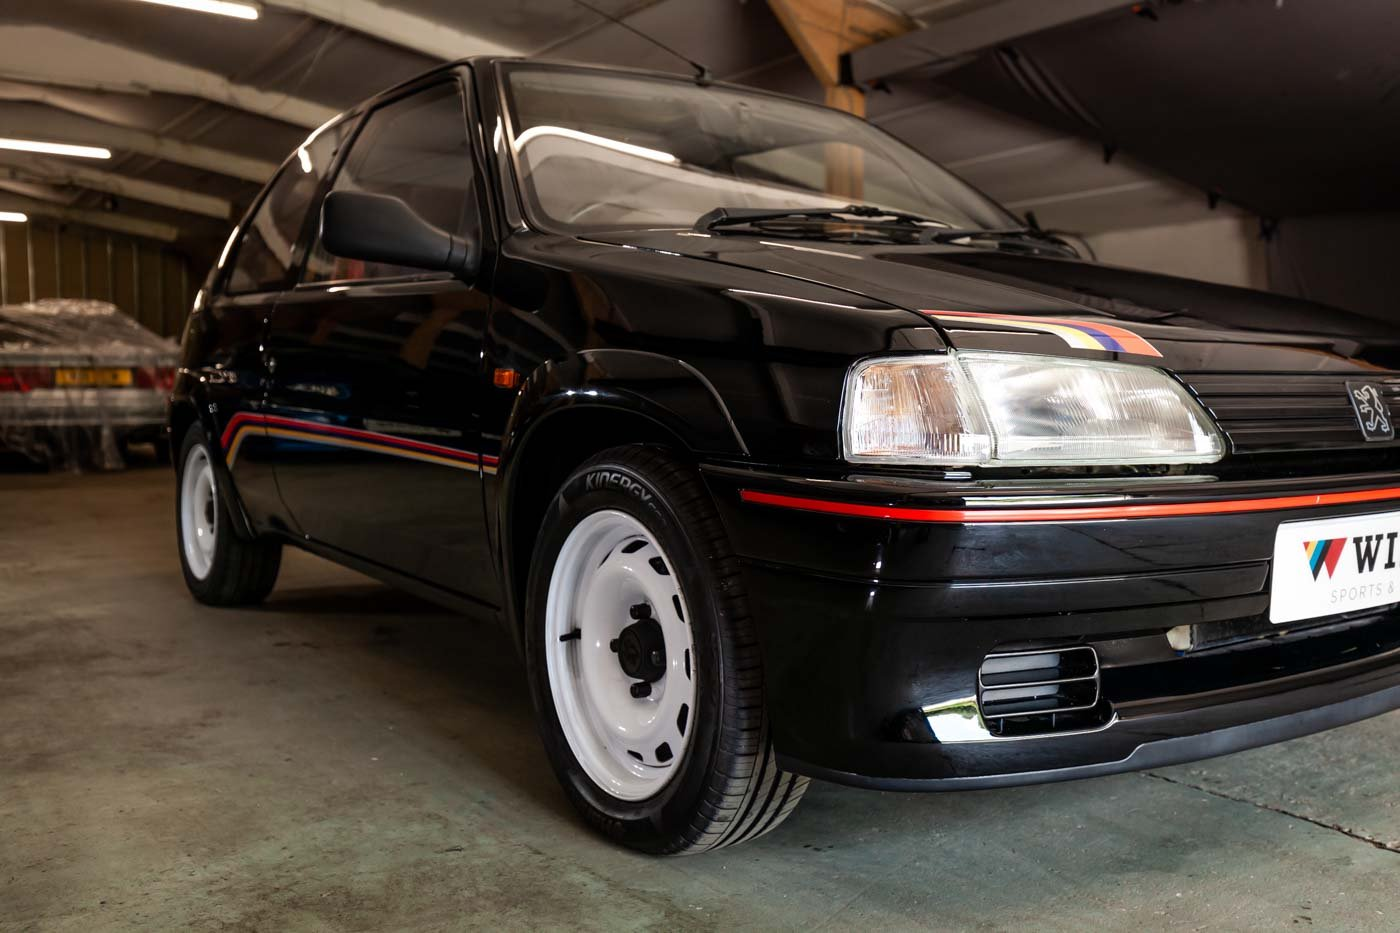 1995 Peugeot 106 Rallye S1 For Sale (picture 8 of 15)